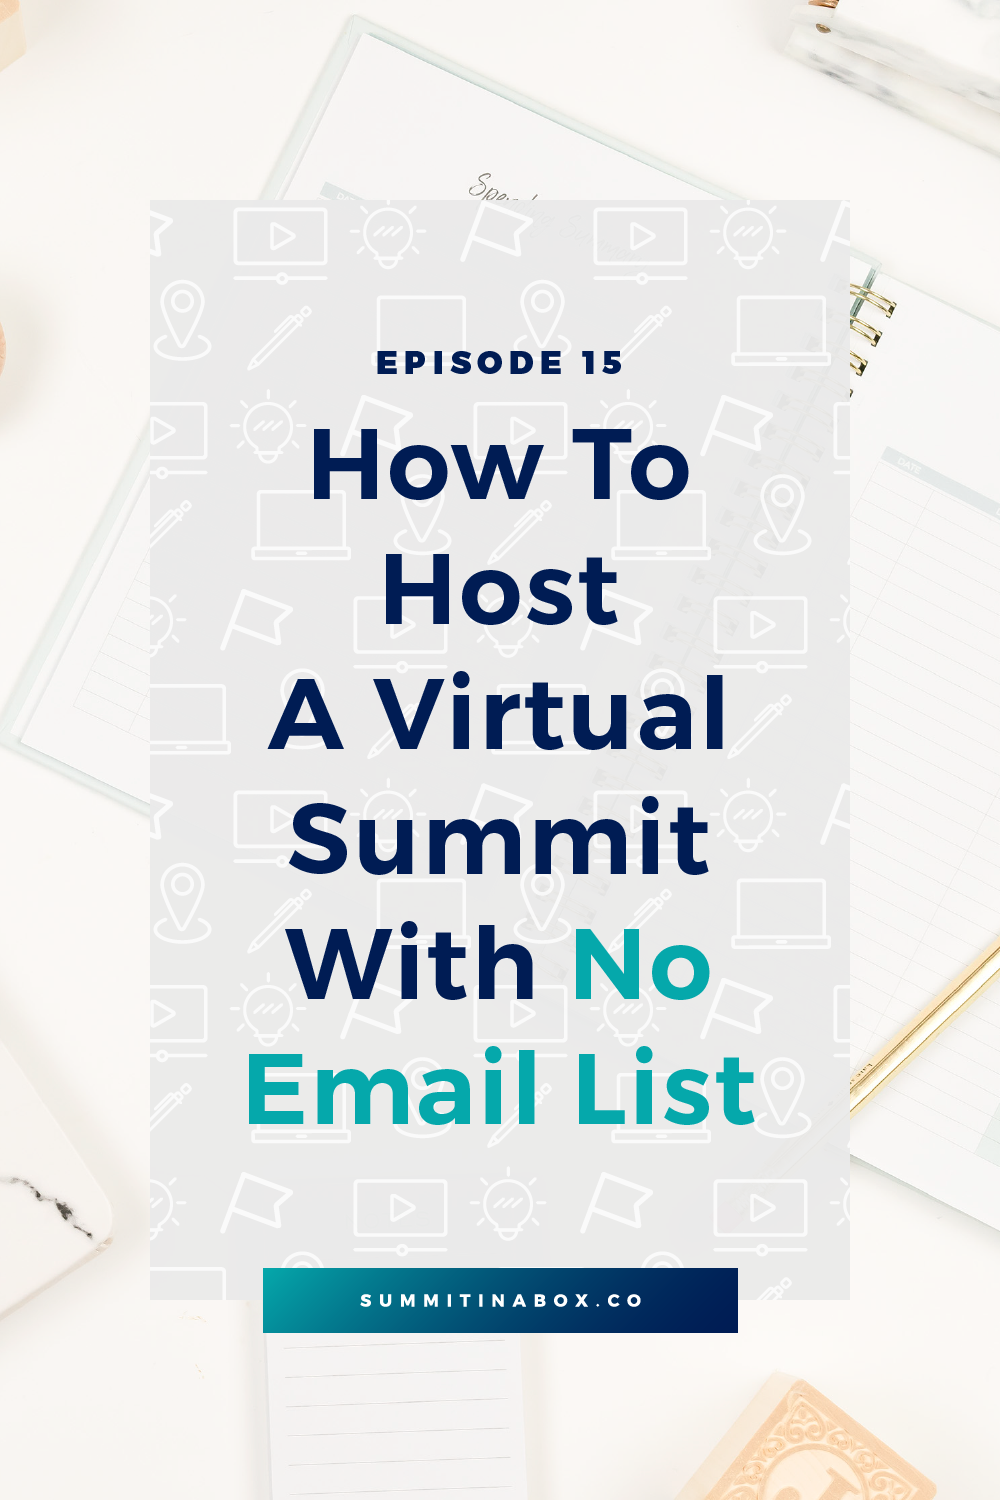 Many marketing strategies depend on a large email list to succeed. Not a virtual summit! Let's cover how to host a profitable virtual summit with no email list.